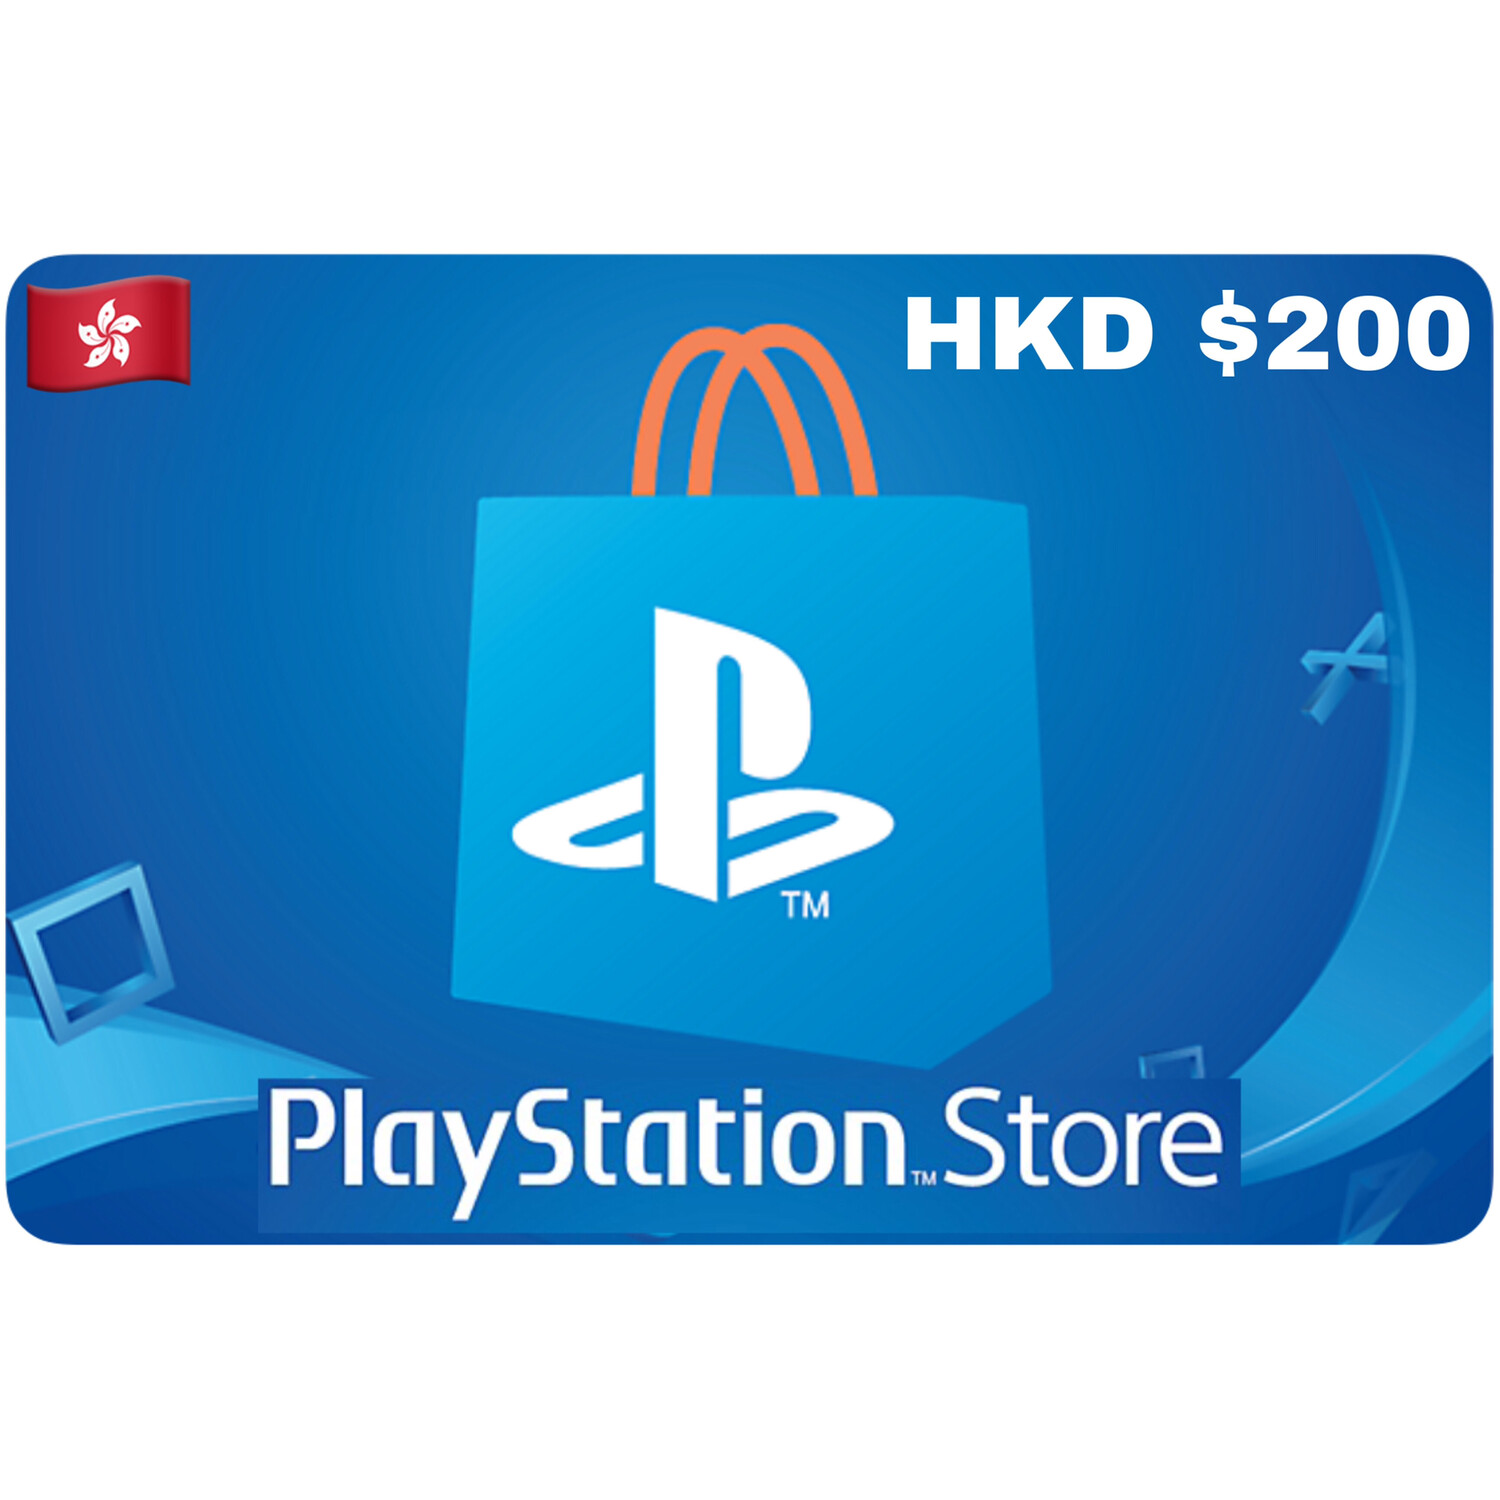 Playstation Store Gift Card Hongkong HKD $200